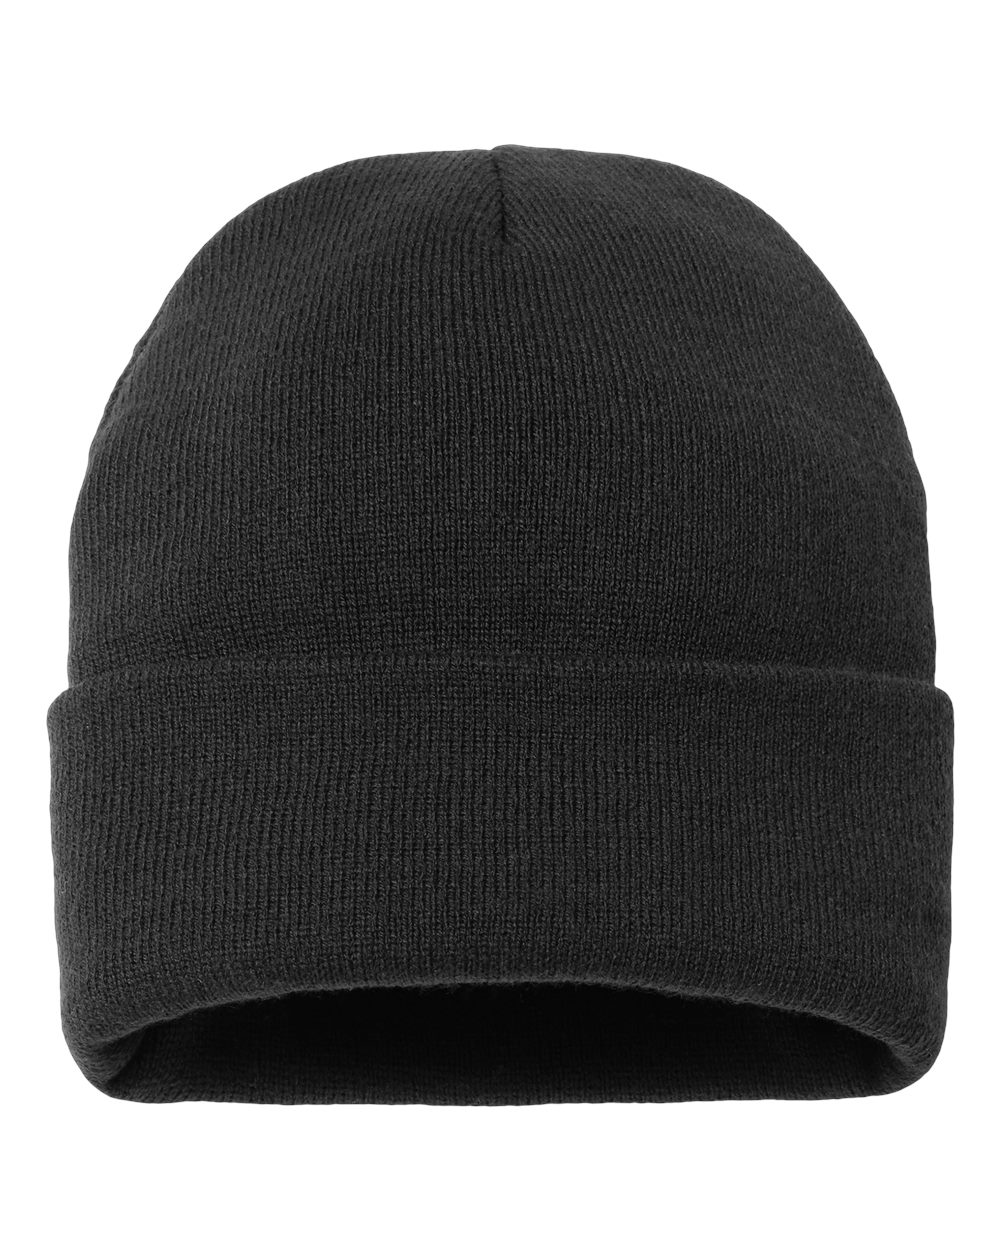 Sportsman Caps SP12SL - Sherpa Lined 12 Knit Beanie